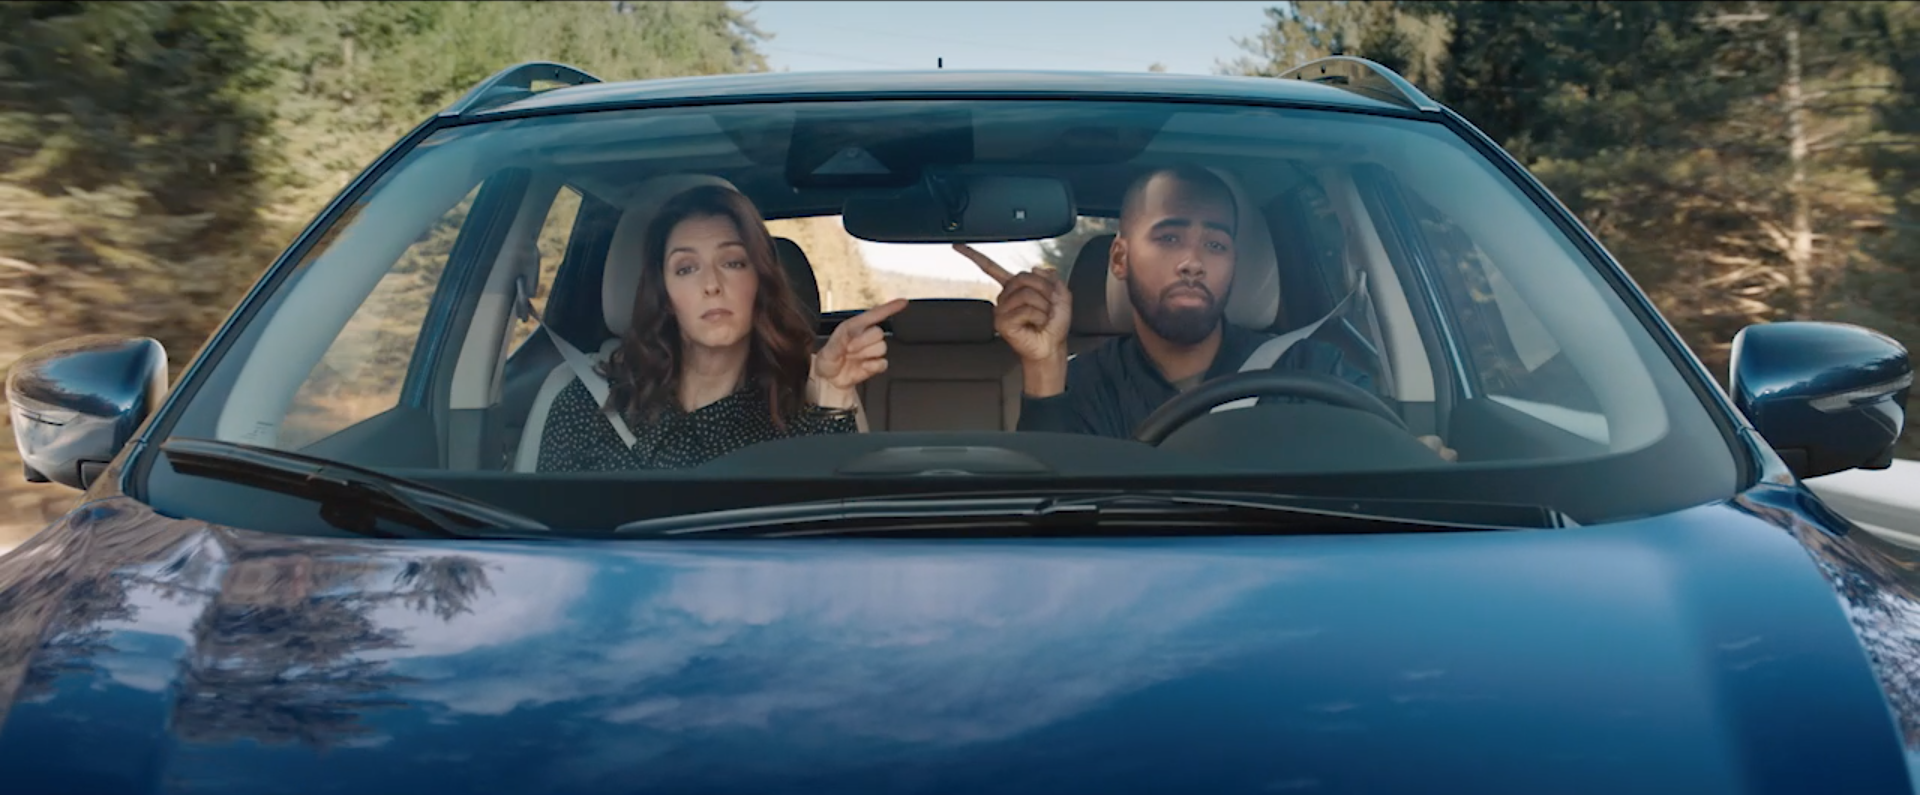 Nissan is All About Connection, Not Connectivity, in New Qashqai Campaign